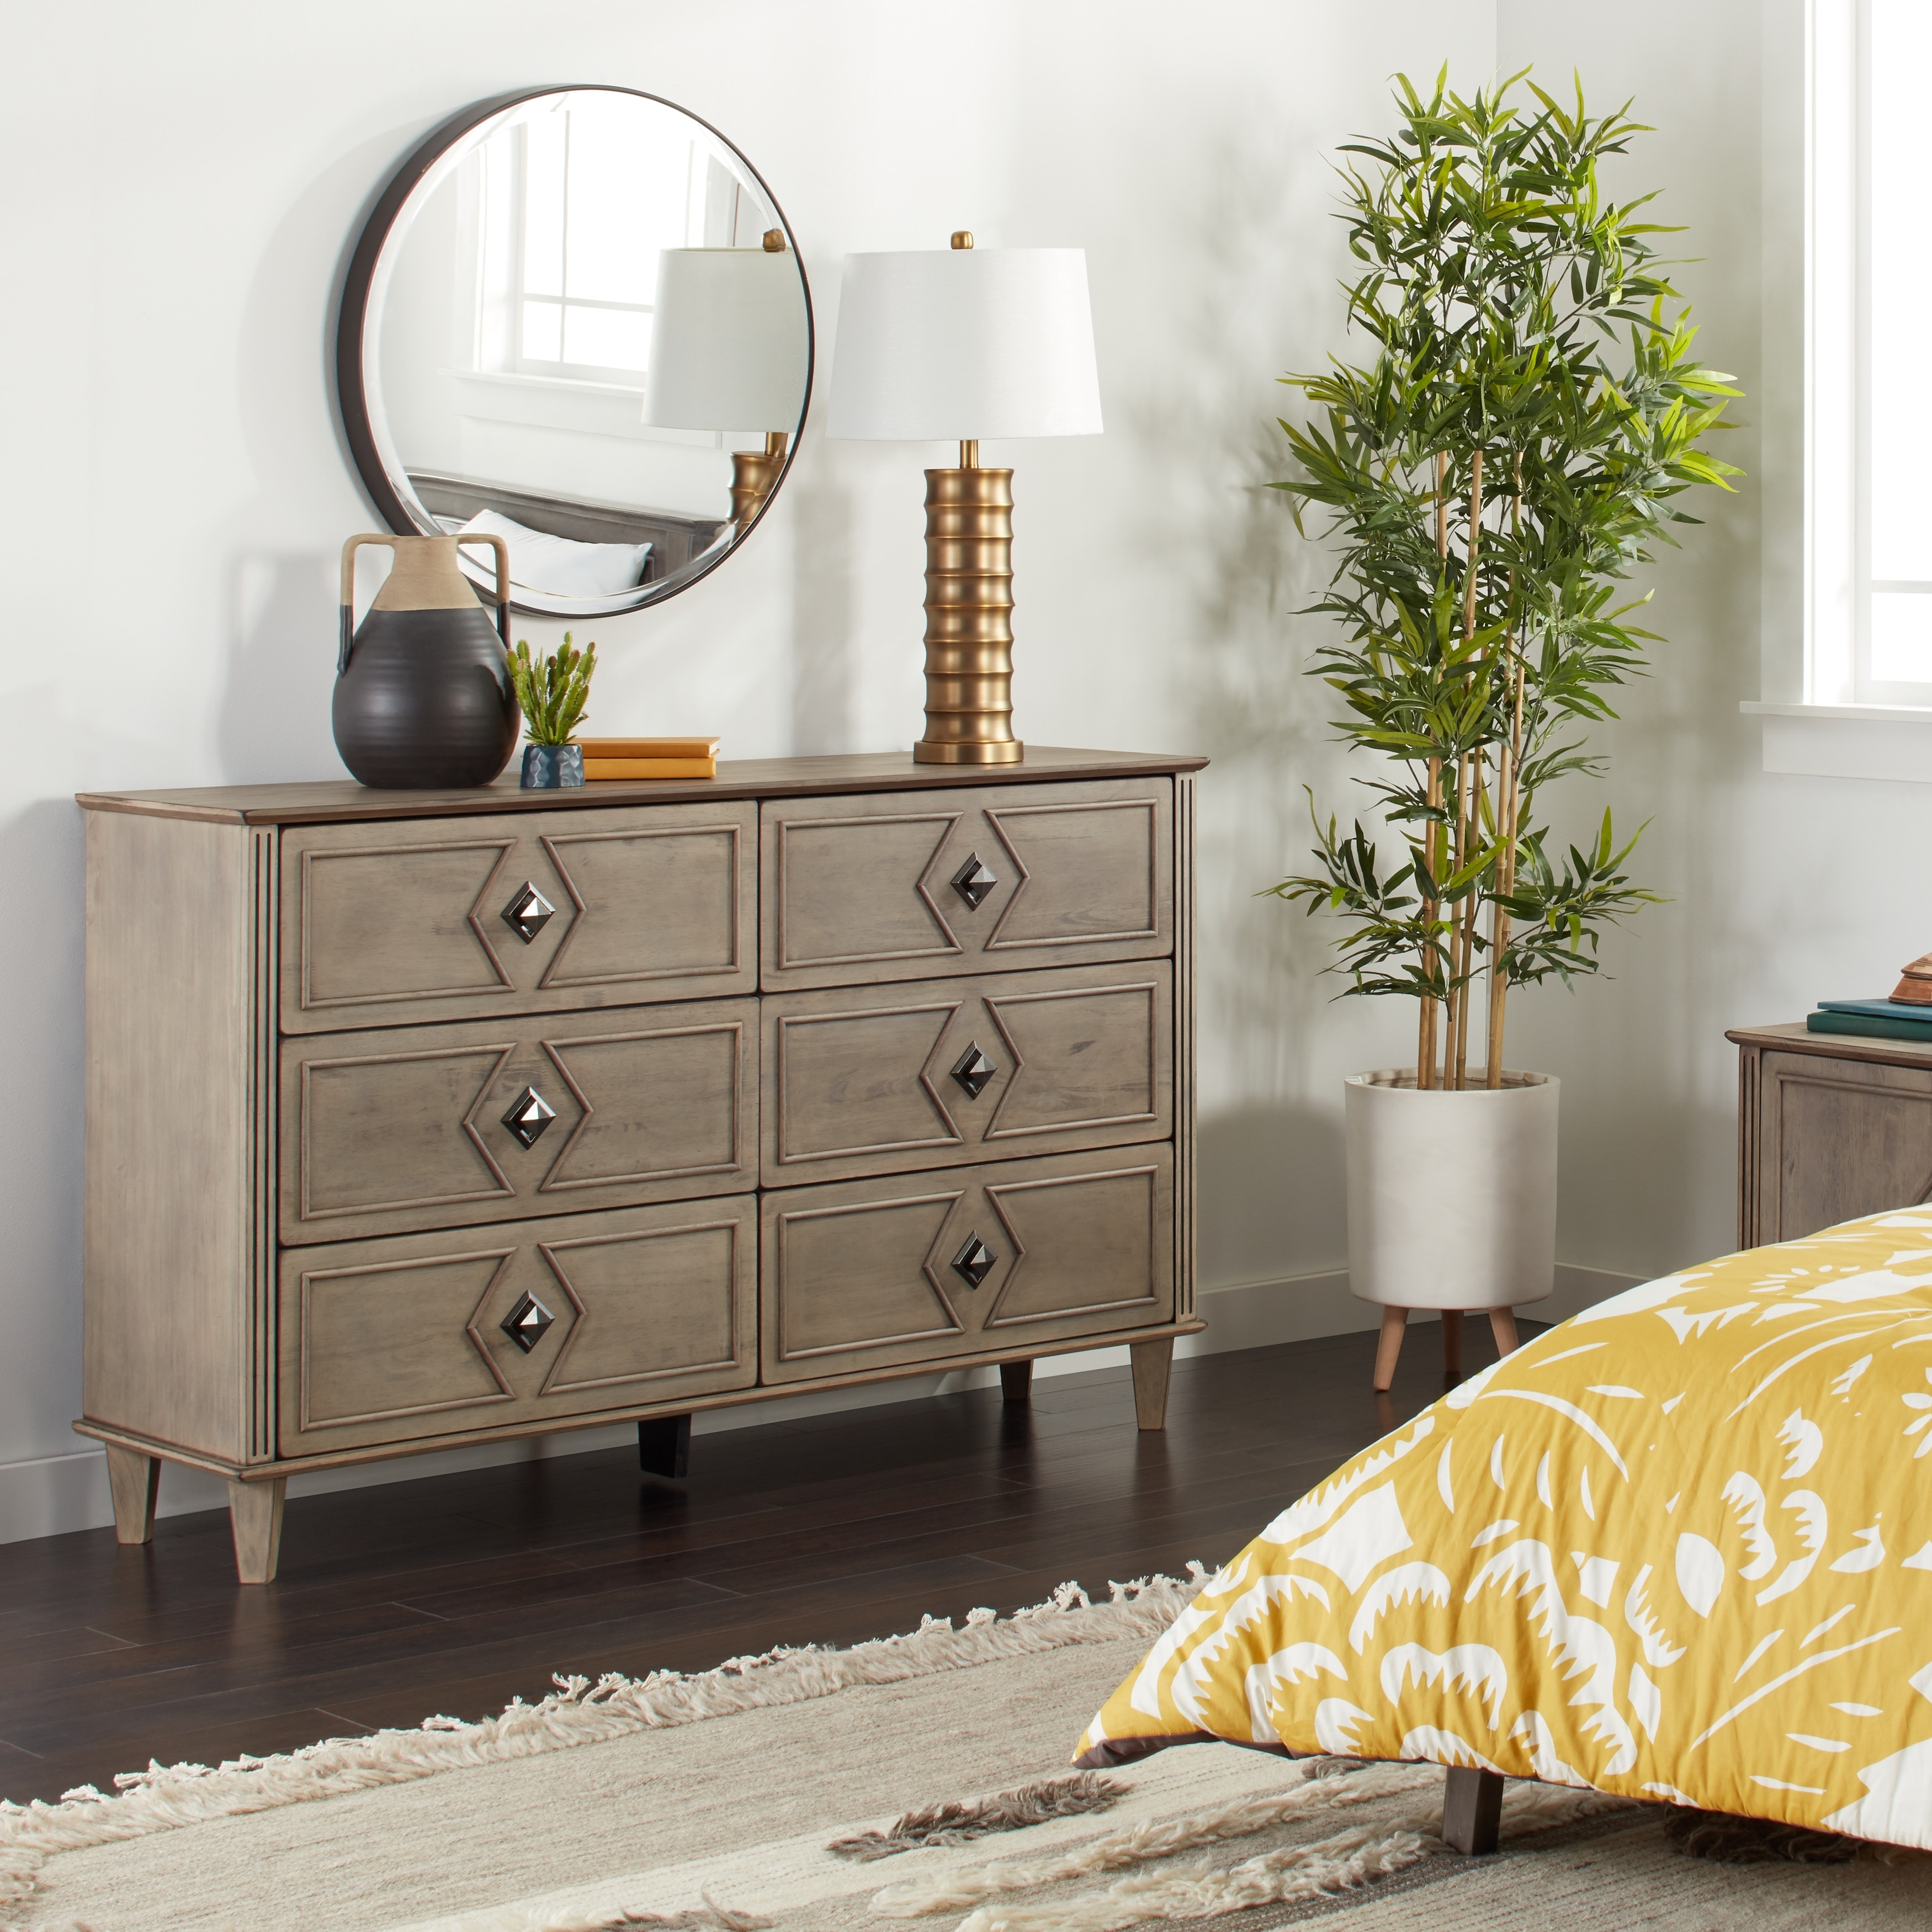 Grey Weathered 6 Drawer Dresser Free Shipping On Orders Over 45 9999980005486